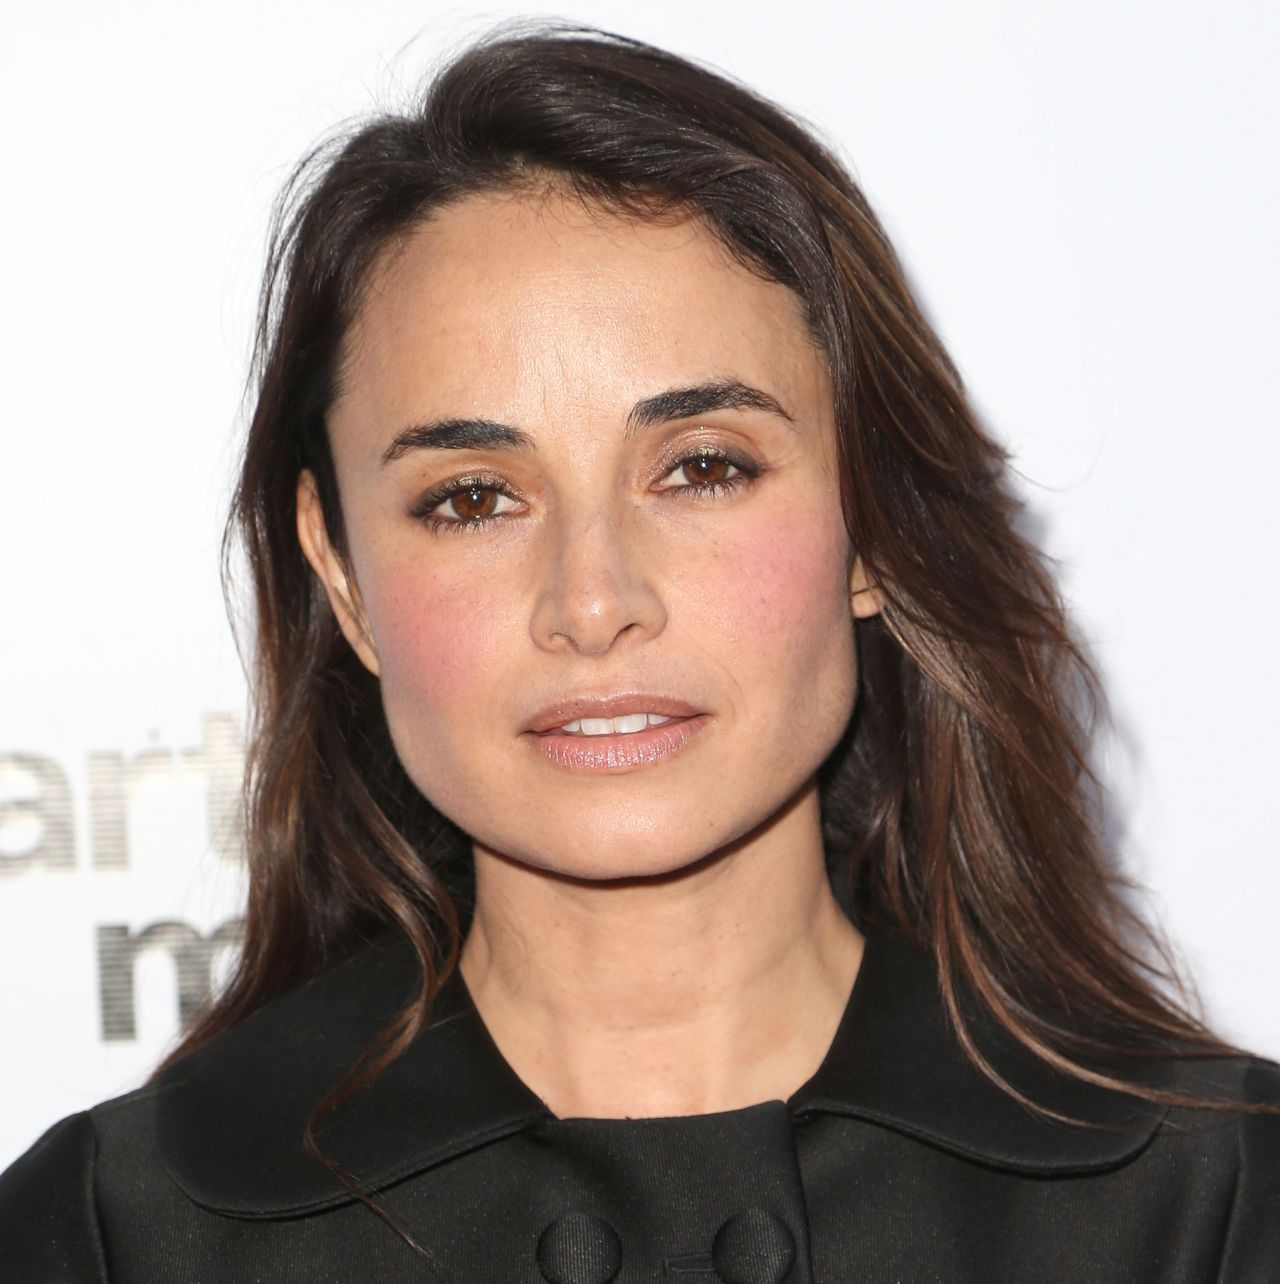 Instagram Mia Maestro nude photos 2019